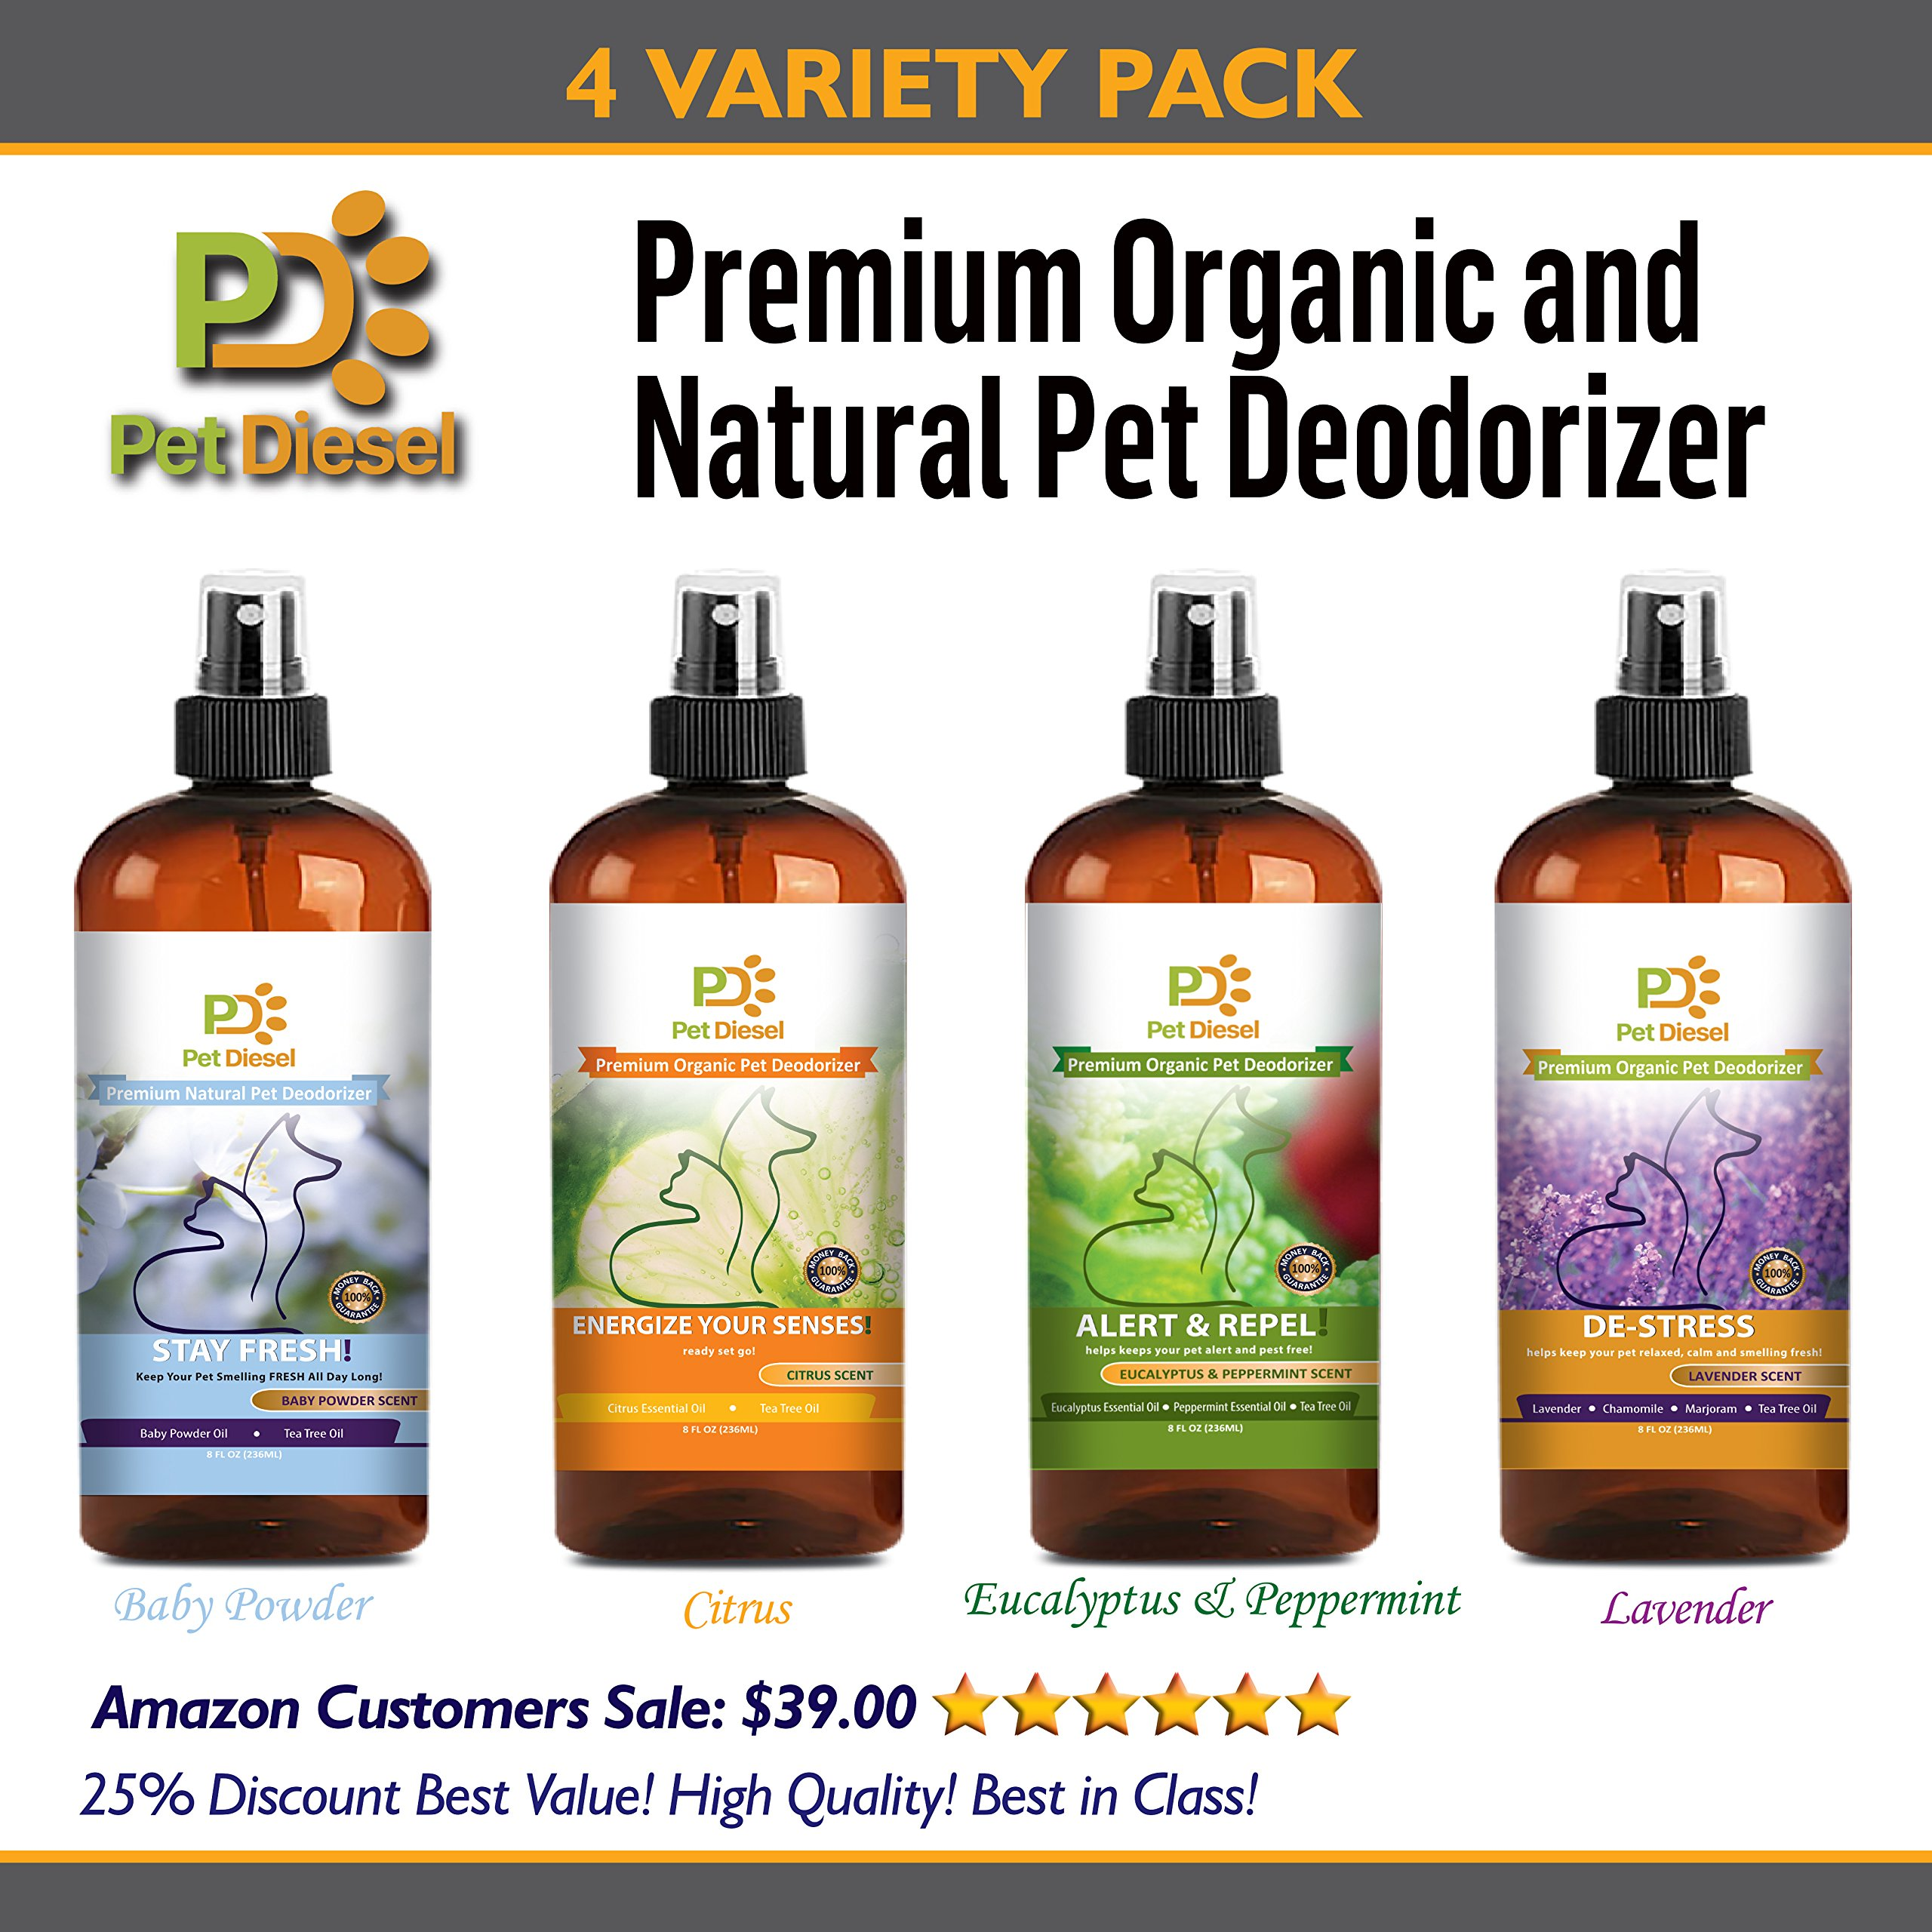 4 Value Pack | Pet Deodorizer | Pet Cologne | Pet Perfume | Aromatherapy for Pets | Eliminates Odors & Removes Bacteria w/Enzymes | Baby Powder | Lavender | Eucalyptus & Peppermint | & Citrus Scents